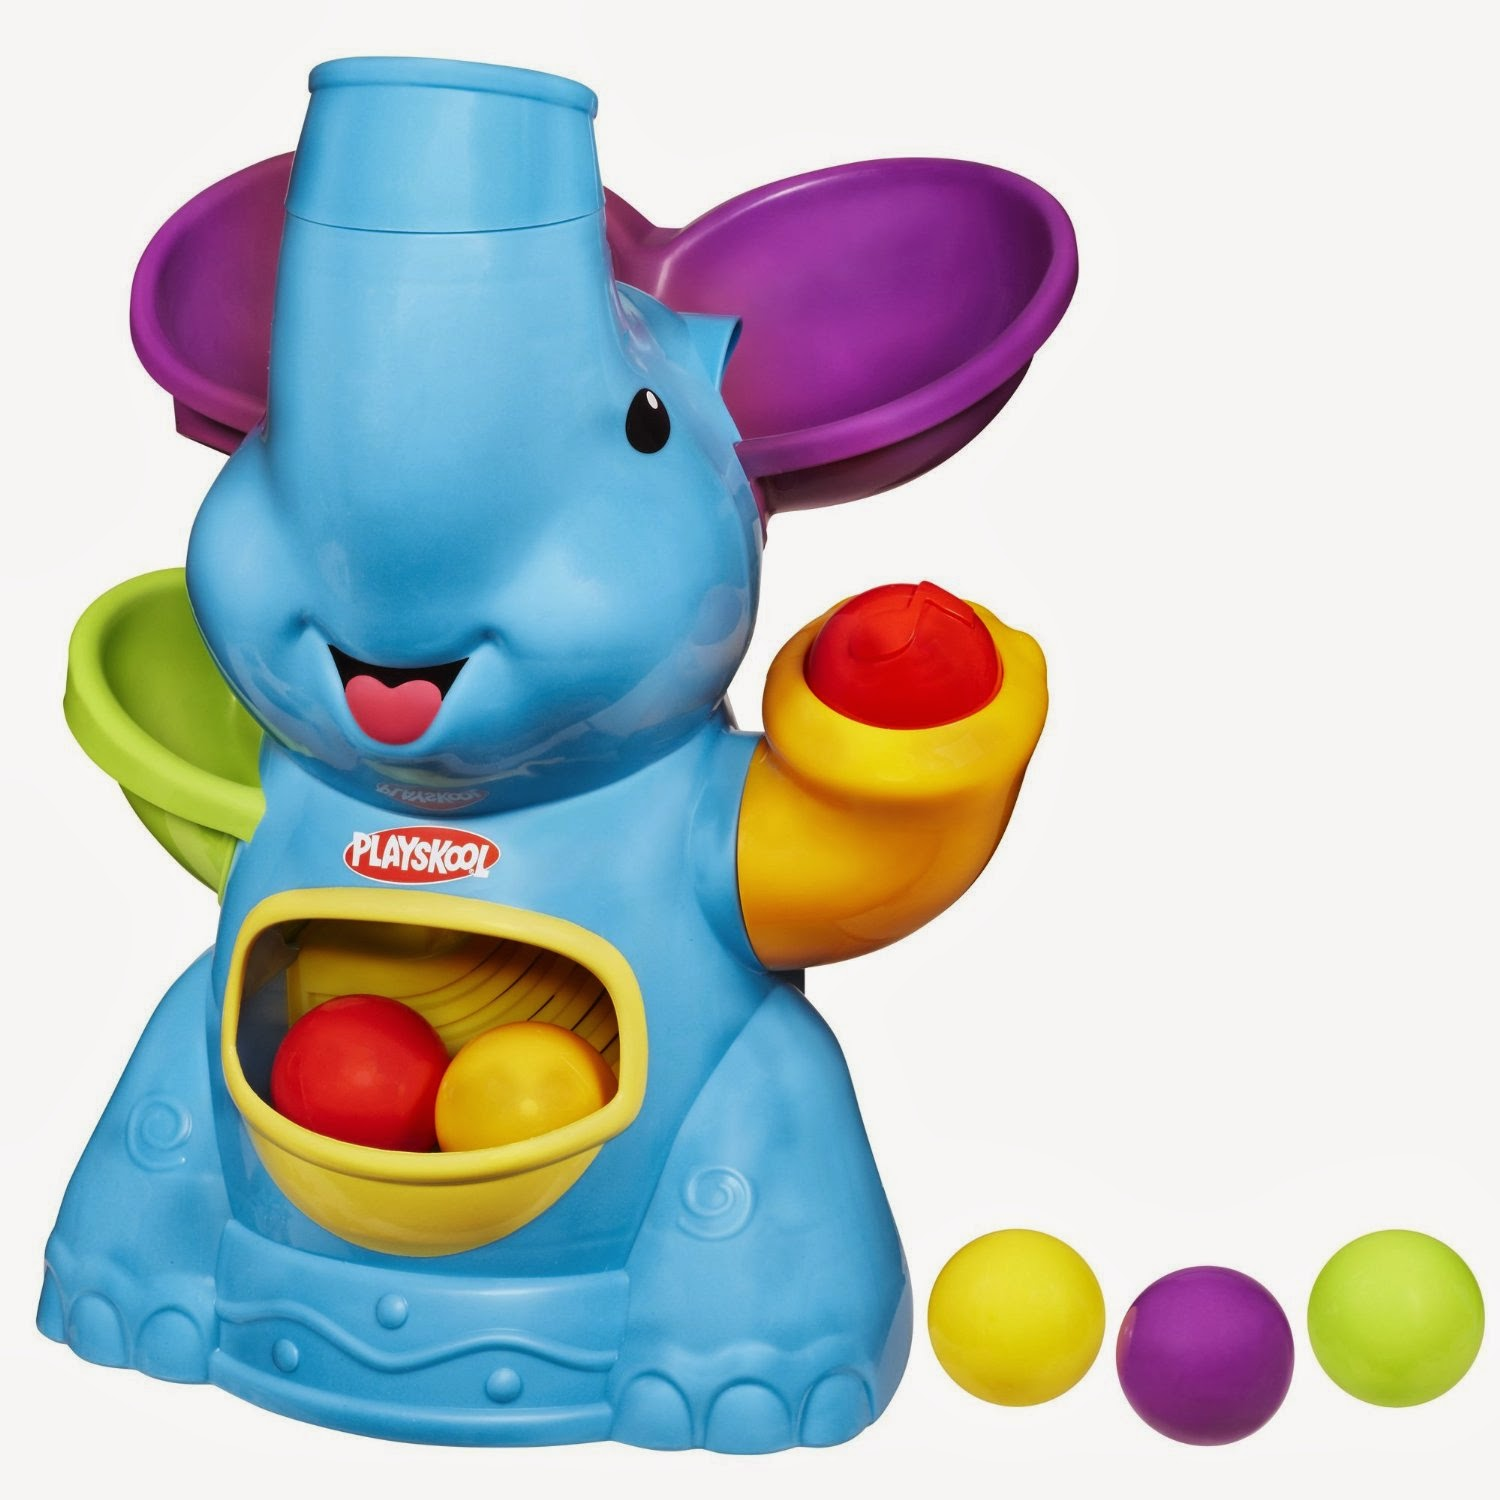 https://www.amazon.com/Playskool-Poppin-Park-Elefun-Popper/dp/B004S6A1QK/ref=as_li_ss_til?tag=soutsubusavi-20&linkCode=w01&creativeASIN=B004S6A1QK